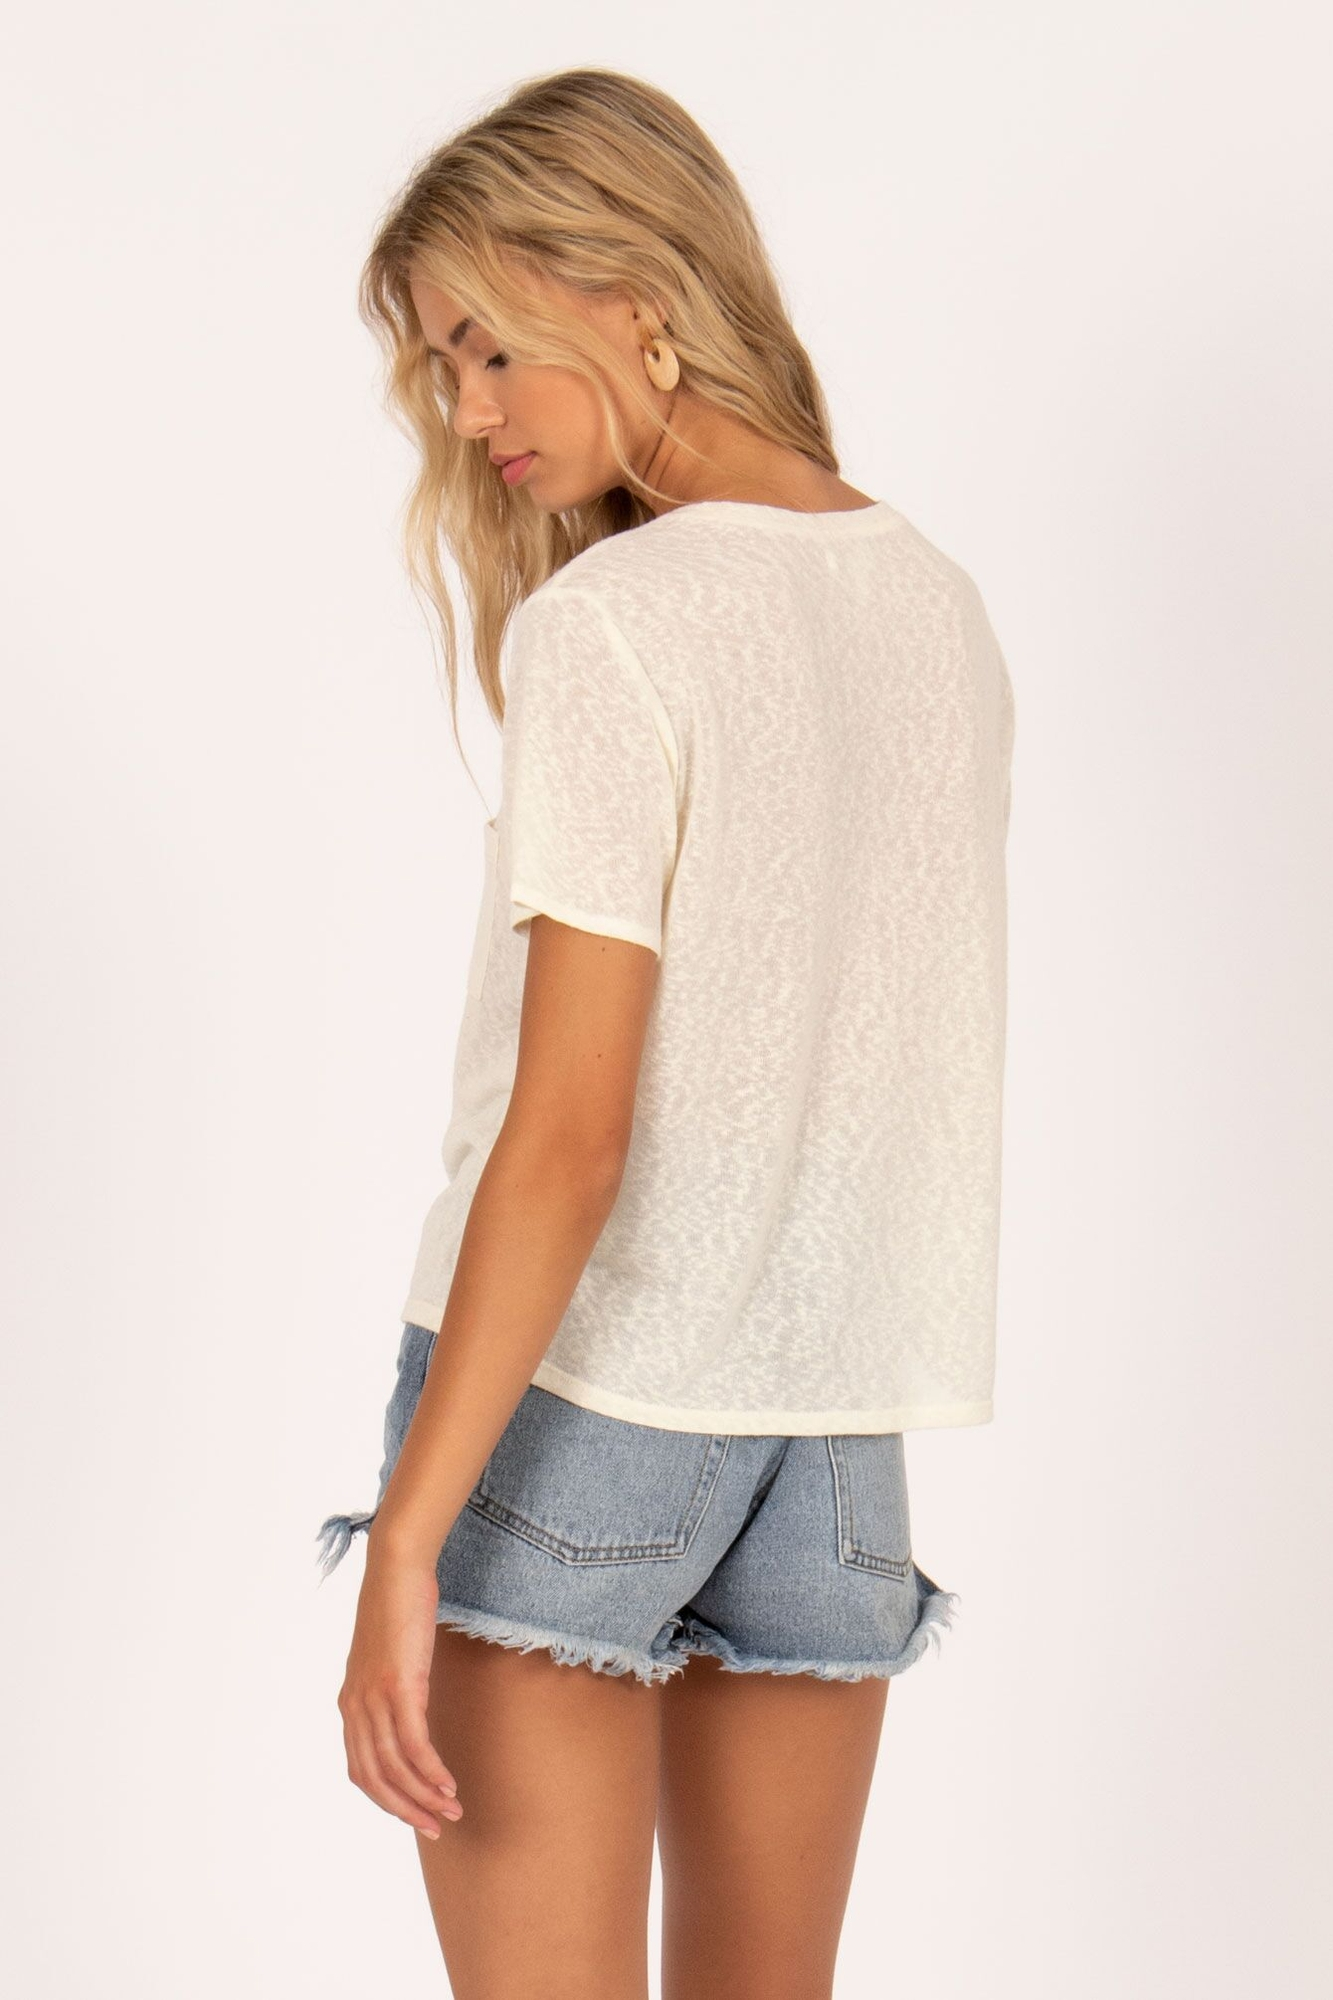 On The Run Knit Top